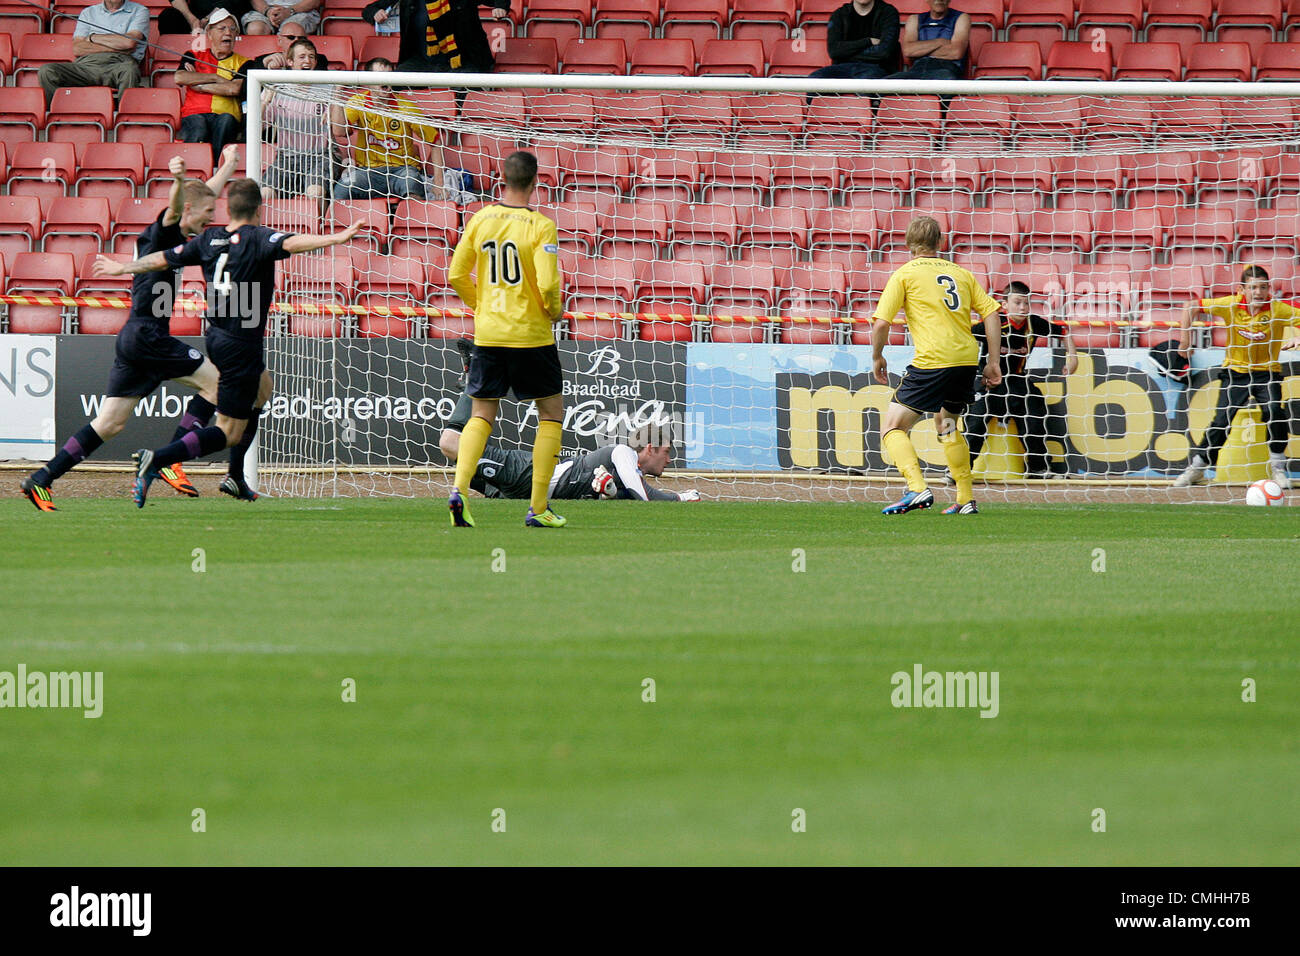 11th Aug 2012. 11.08.2012 Glasgow, Scotland.  Partick score their first goal during the Scottish Football League - Stock Image